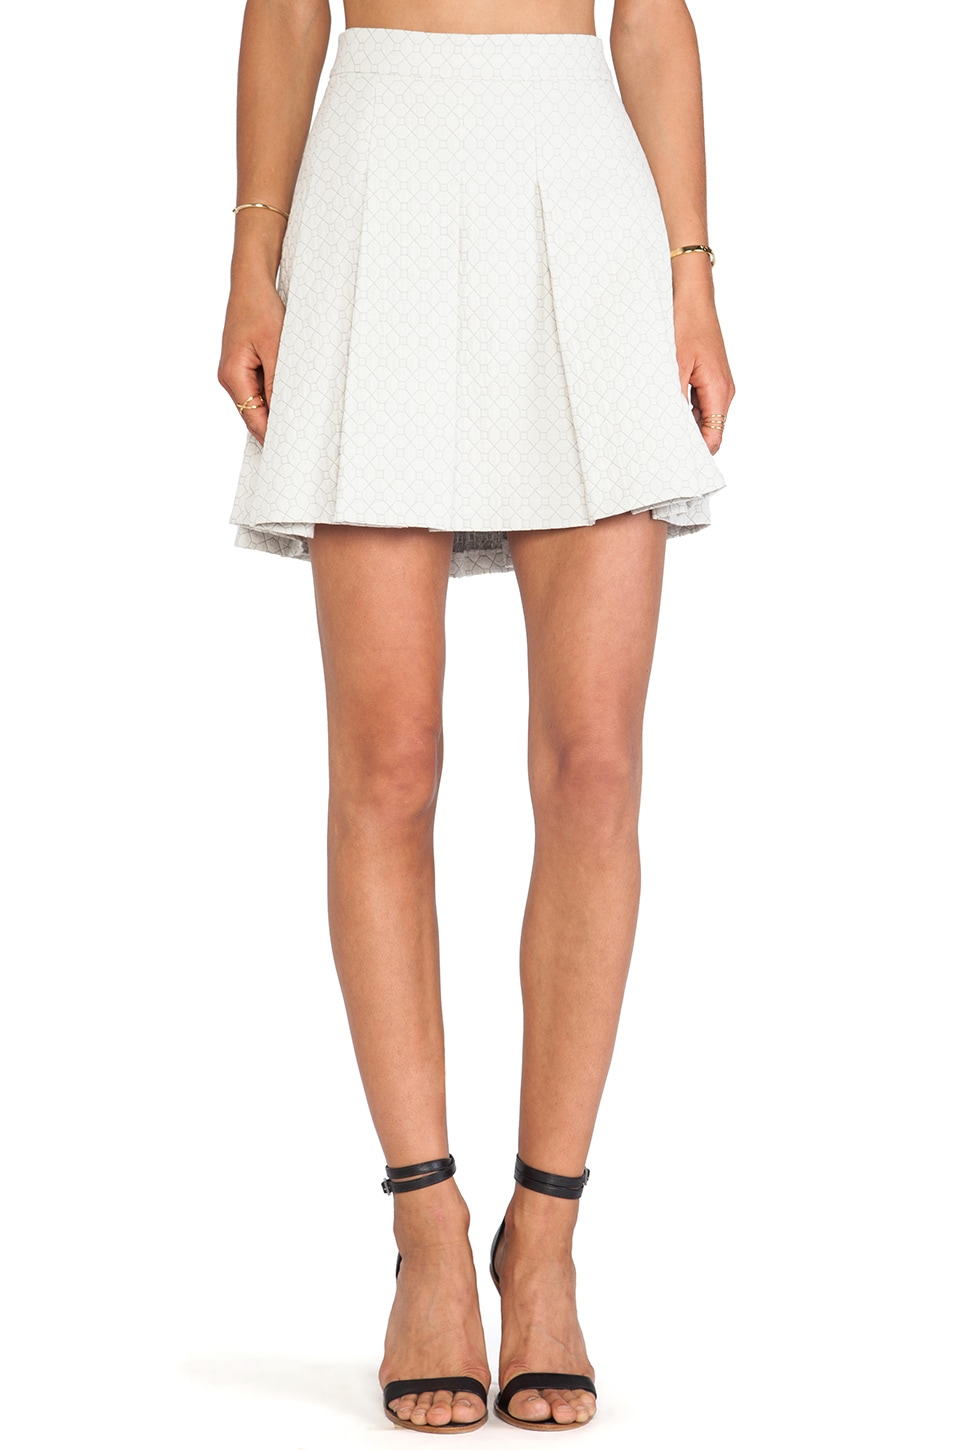 DEREK LAM 10 CROSBY Box Pleat Short Skirt in Ivory